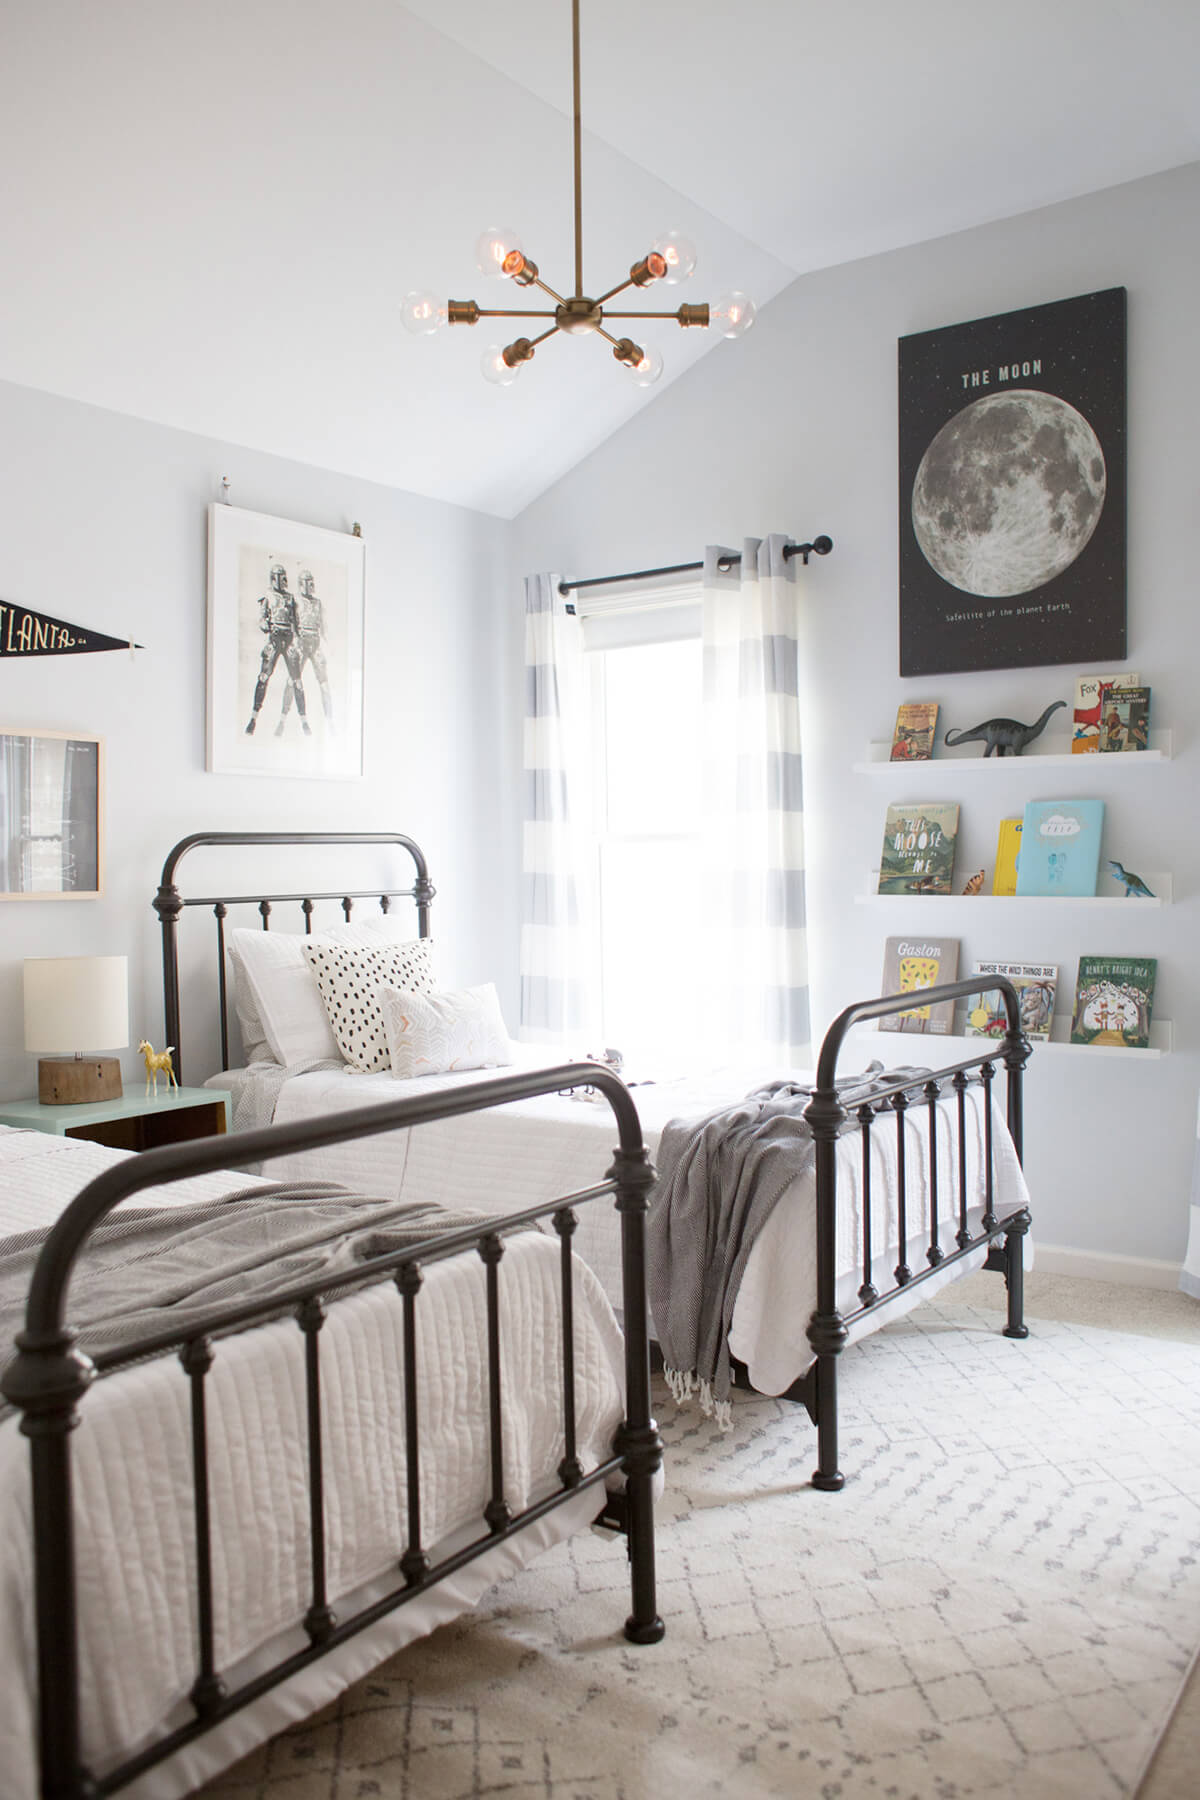 33 Best Teenage Boy Room Decor Ideas and Designs for 2020 on Teen Room Decoration  id=28544